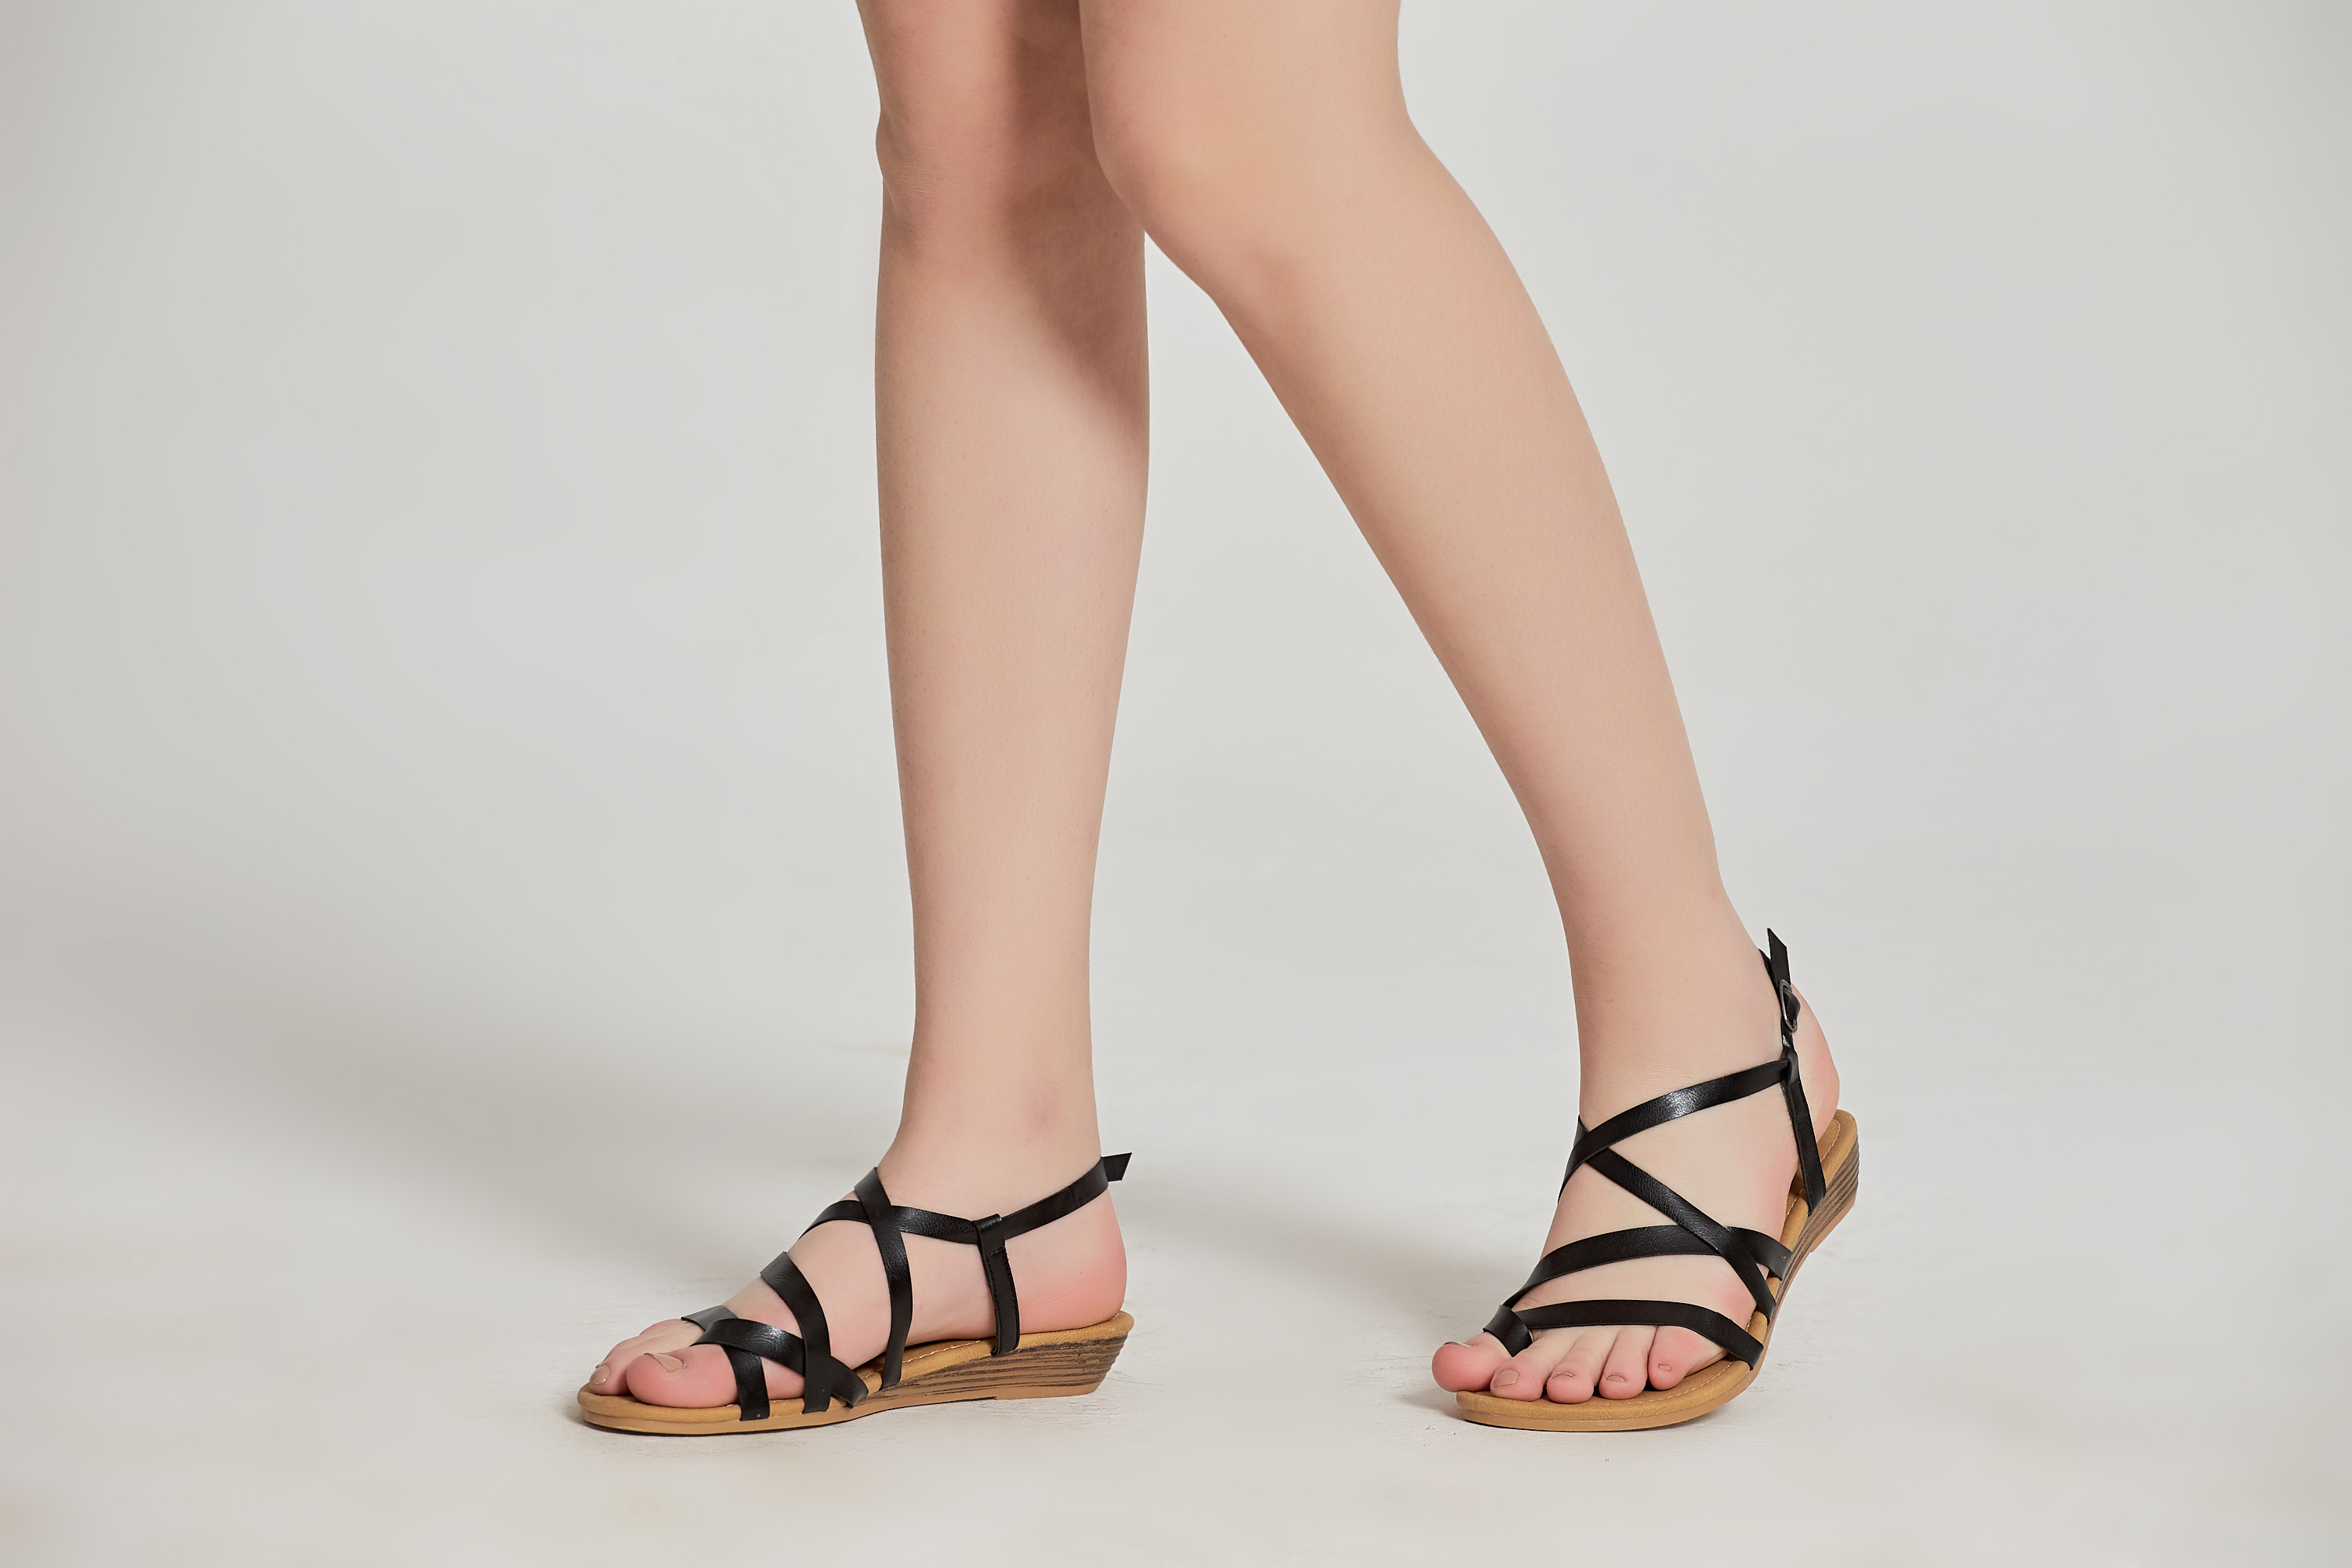 f69add6d8 Women s Casual Gladiator Flip Flops Strappy Sandals Summer Shoes ...